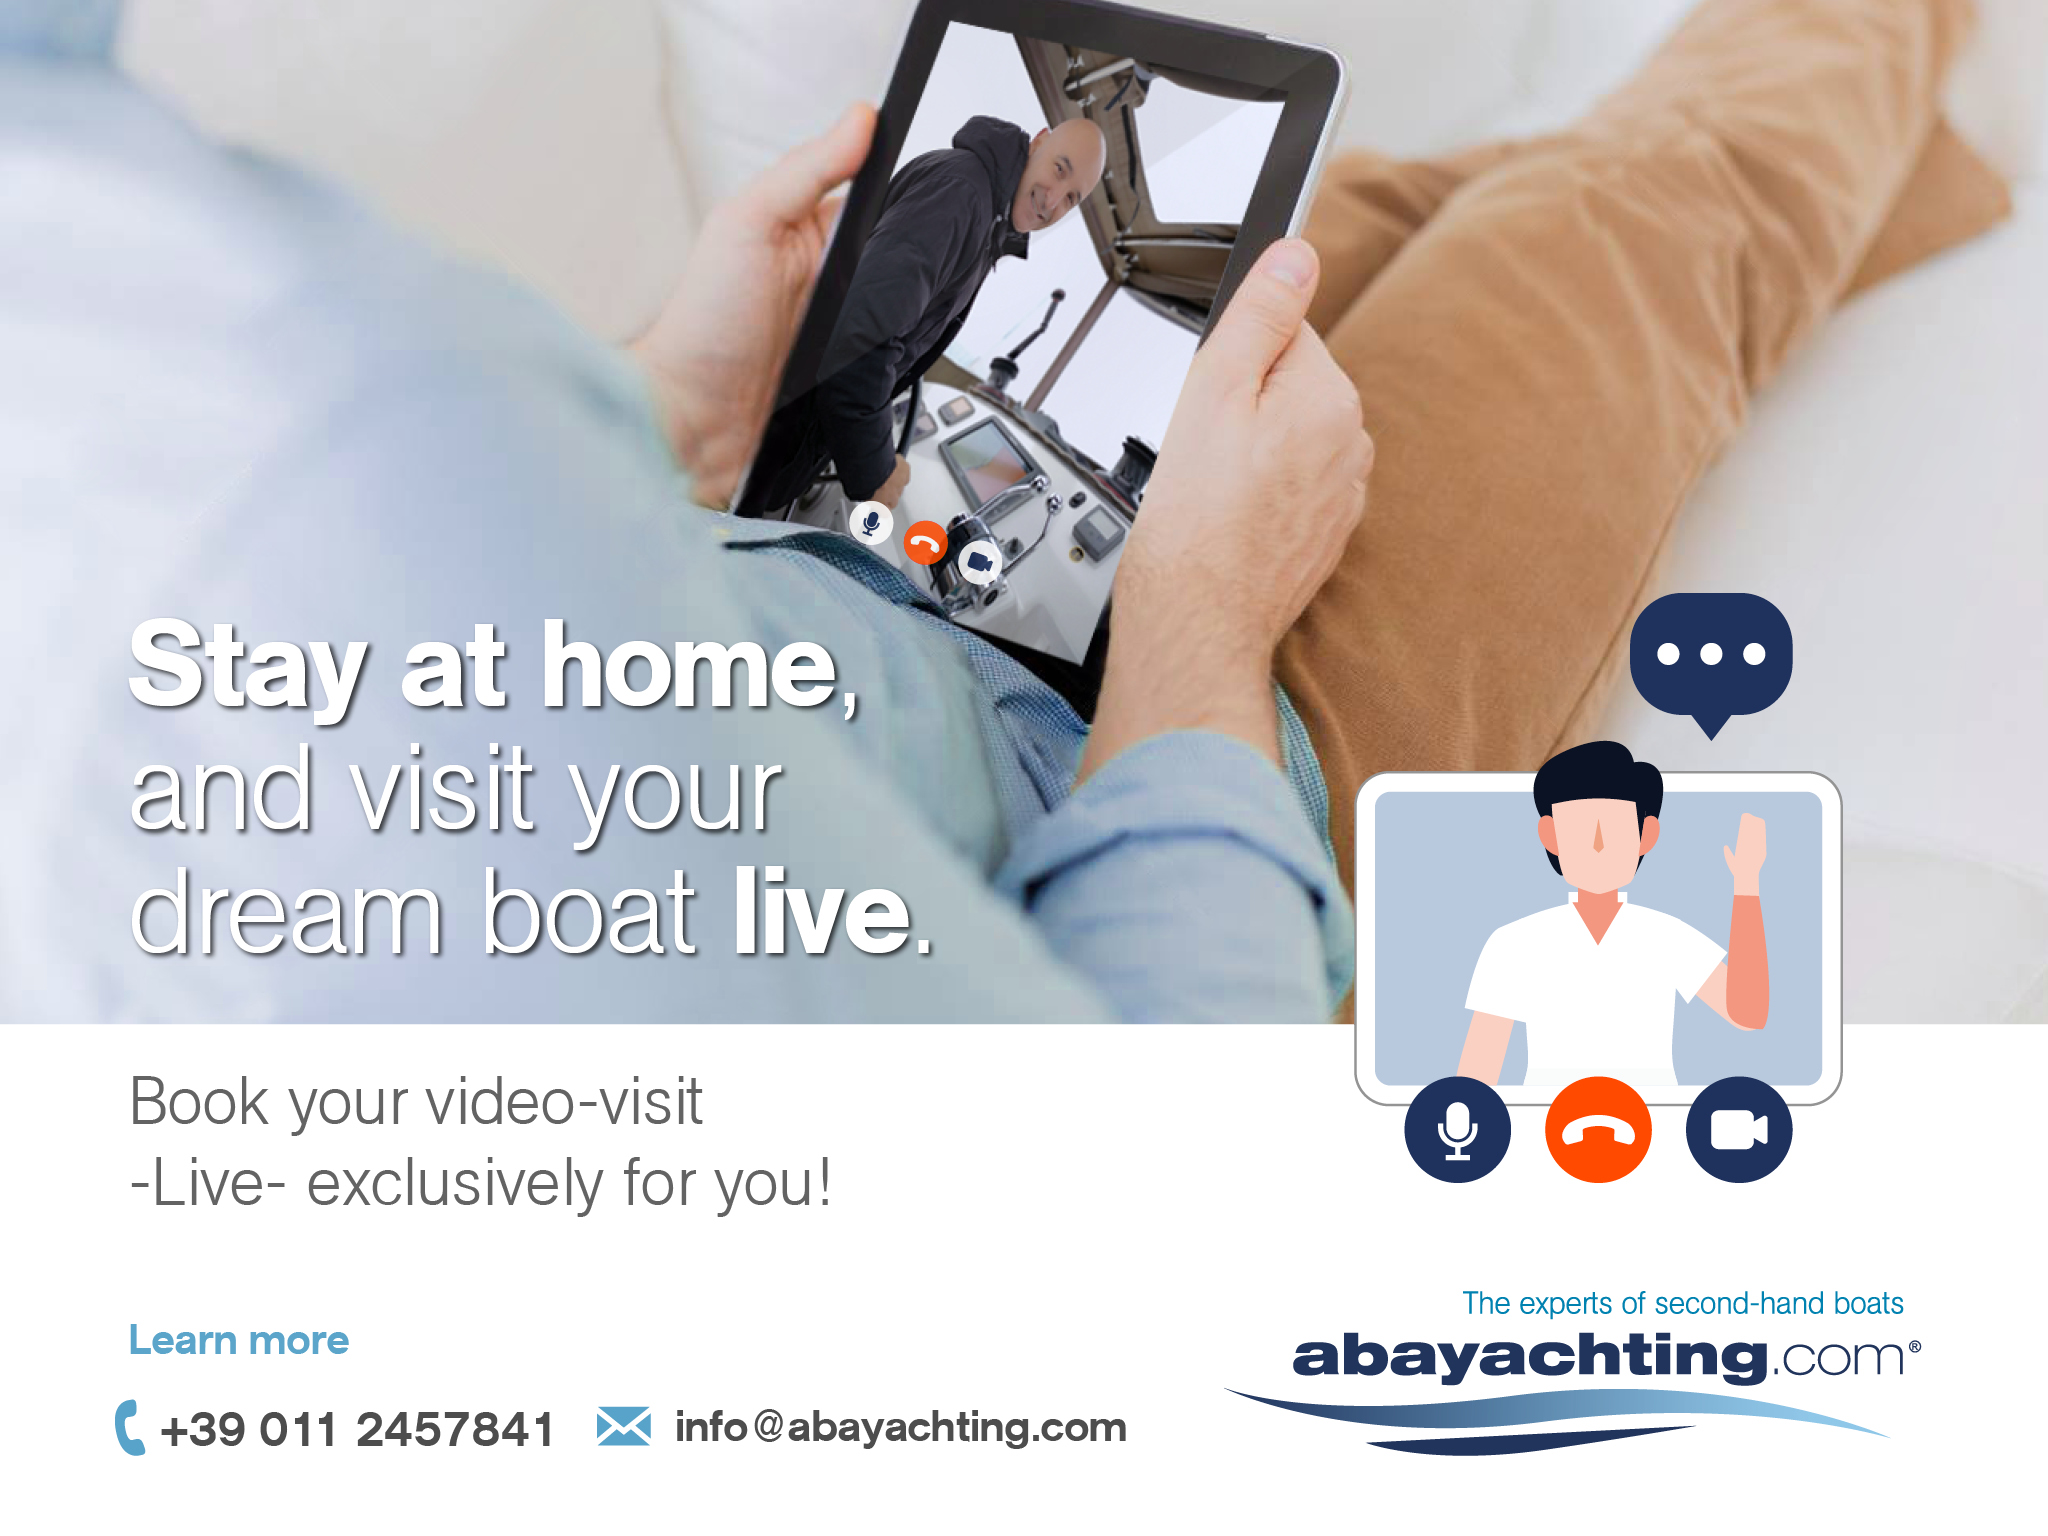 Stay at home, and visit your dream boat live!